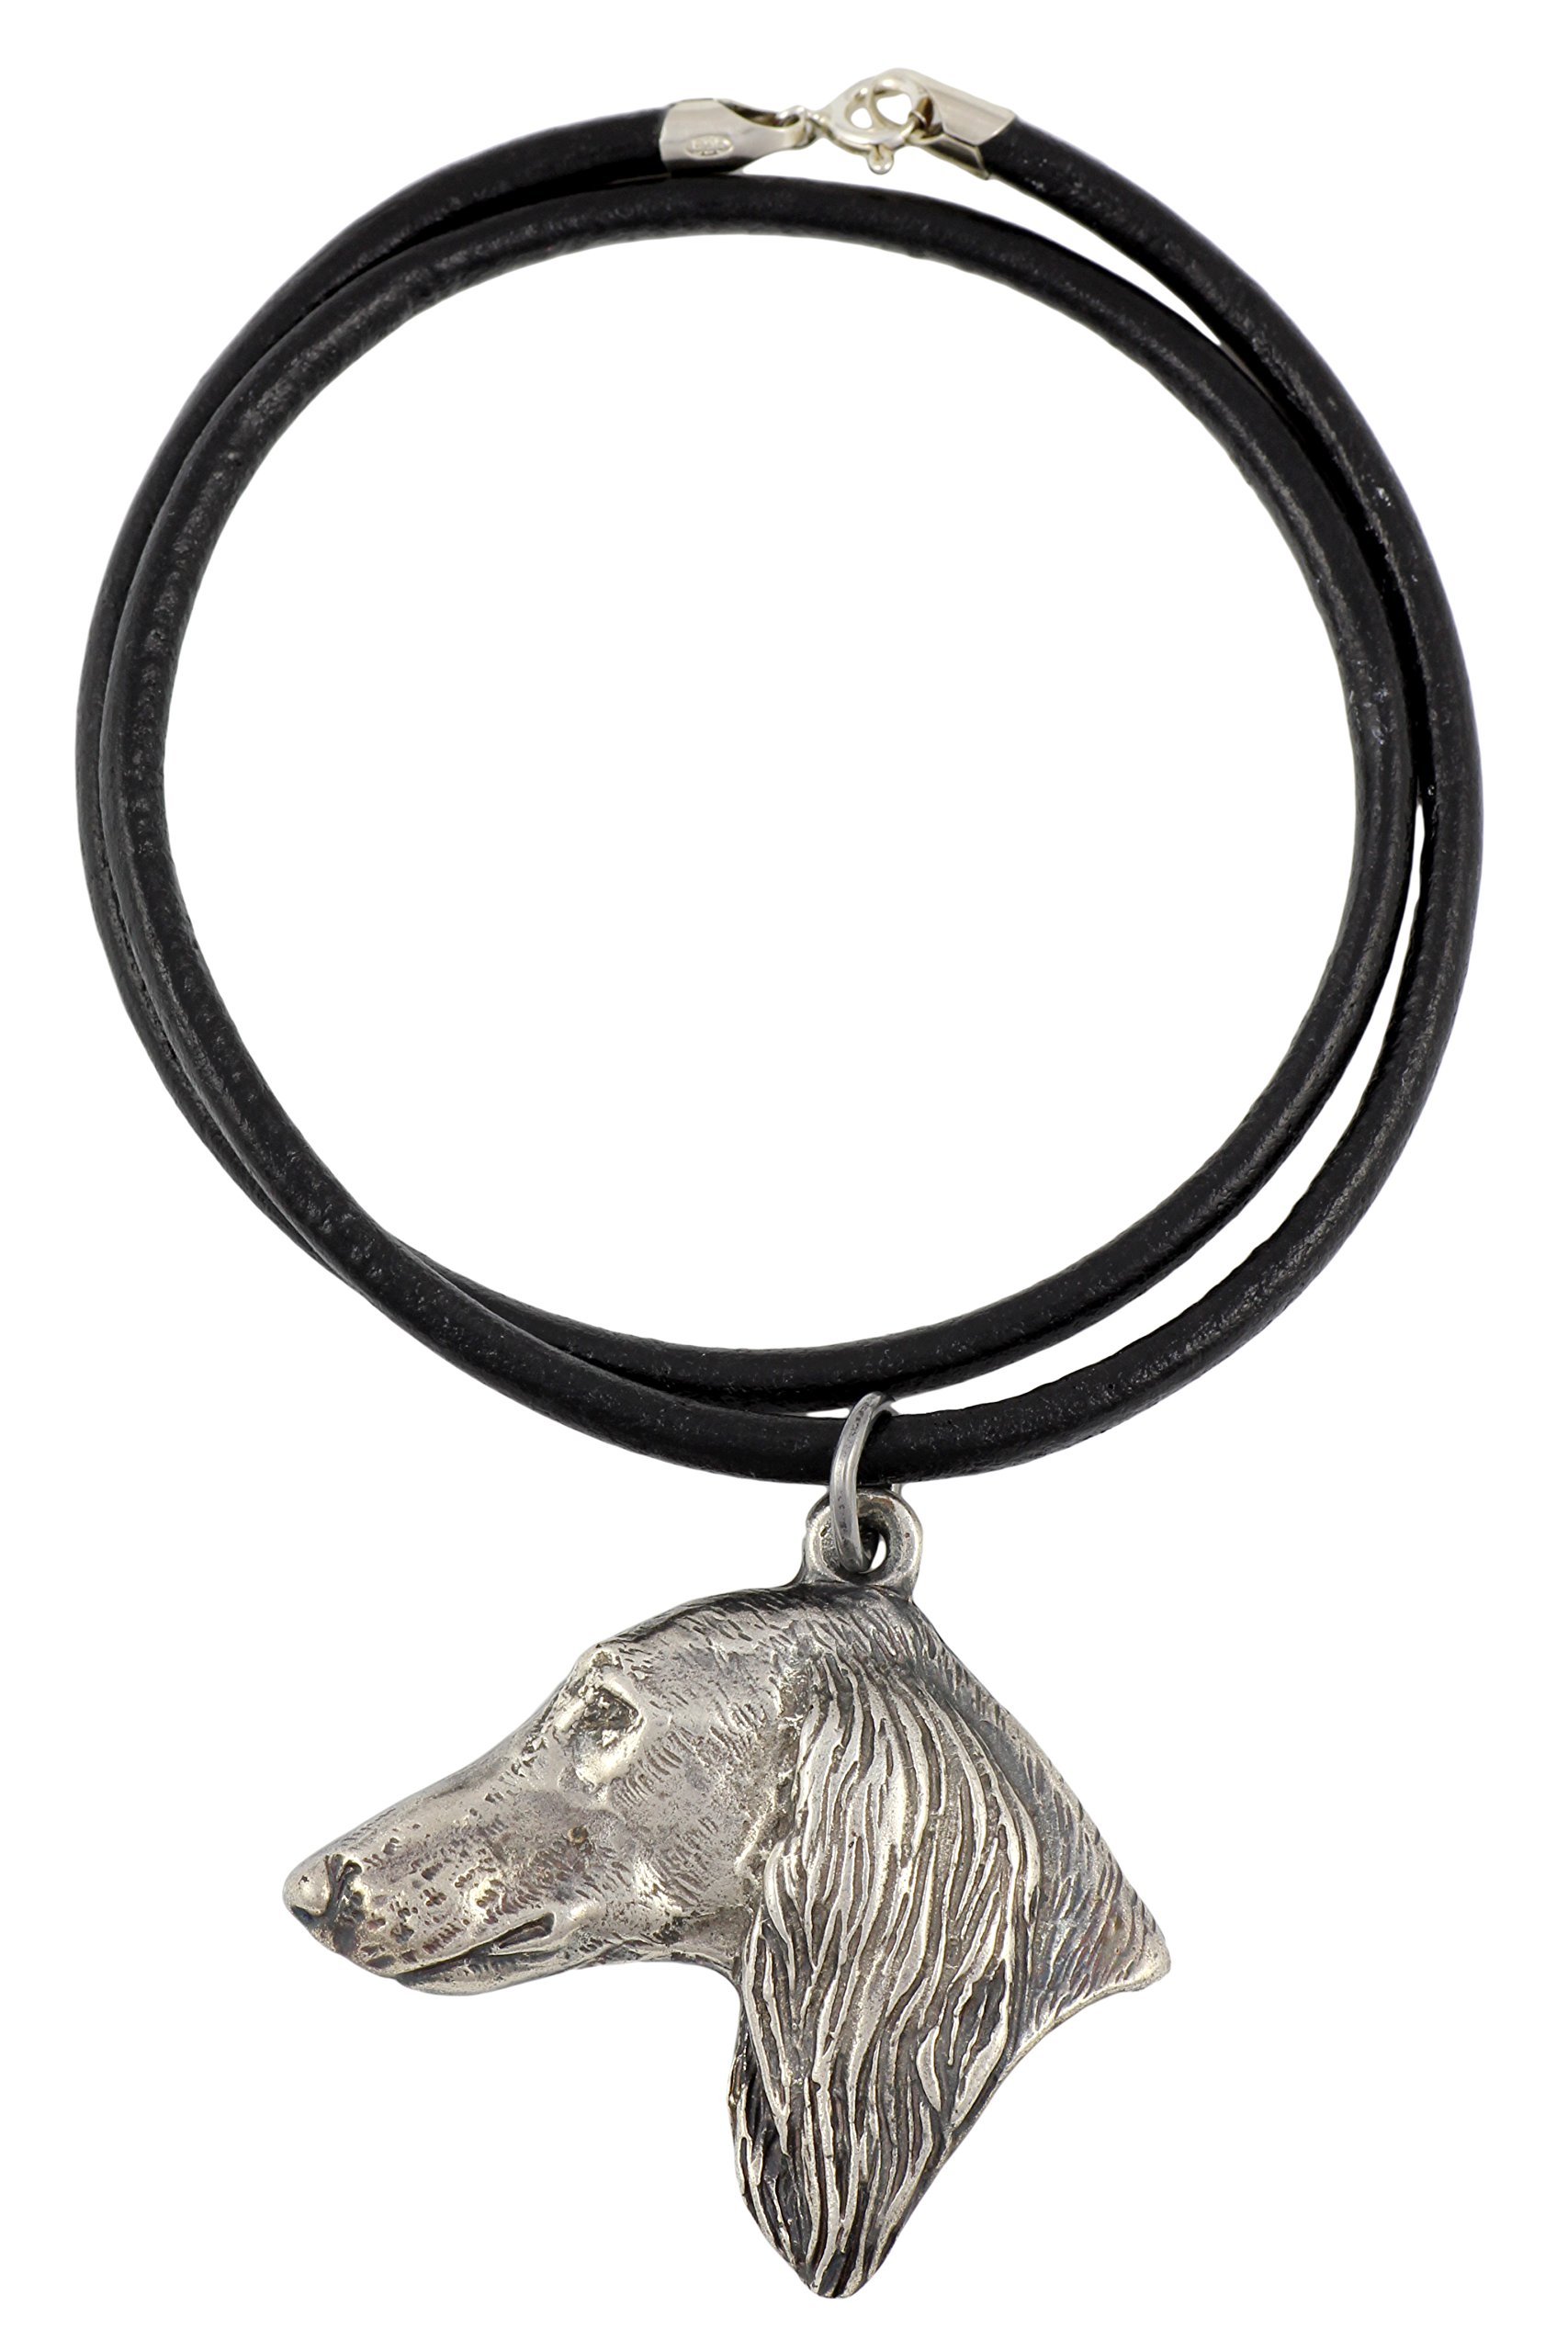 Saluki (With Long Coat on Ears), Royal Dog of Egypt and Persian Greyhound, Gazelle Hound, Silver Hallmark 925, Dog Silver Necklaces, Limited Edition, Artdog